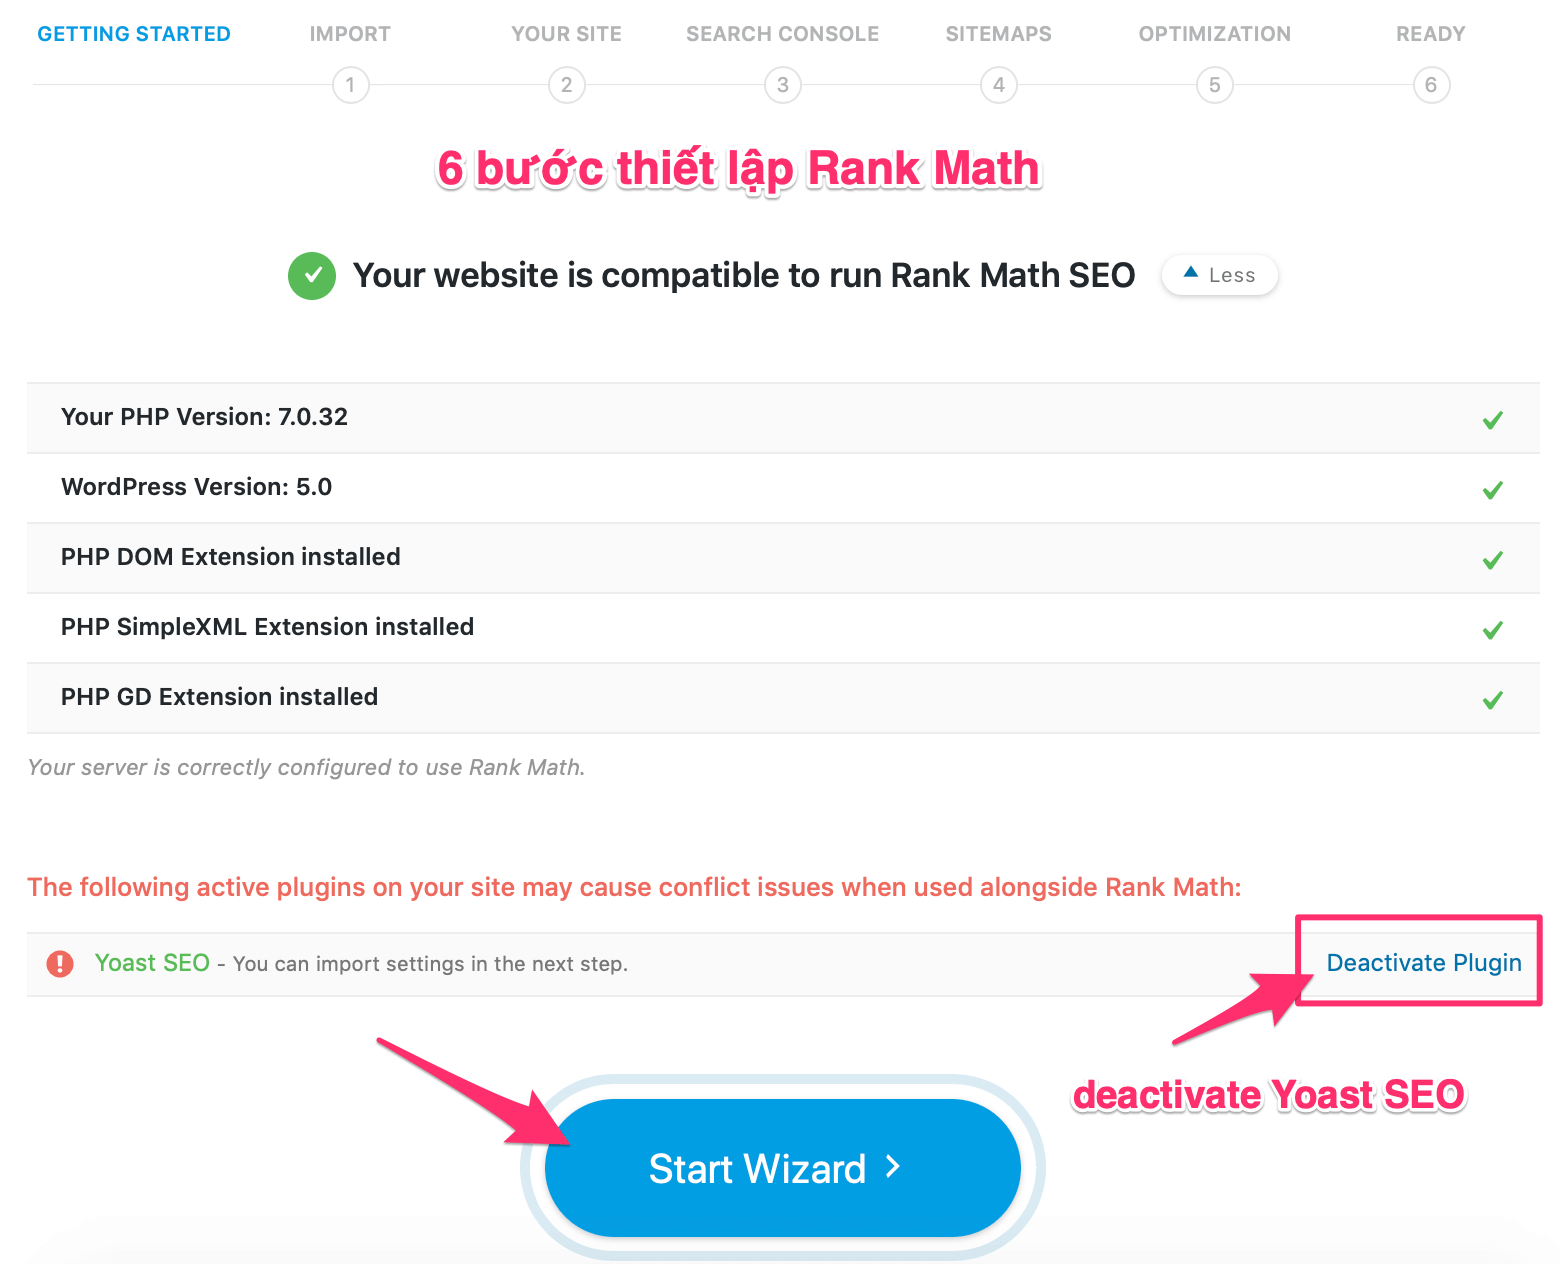 deactivate Yoast SEO - start wizard rank math mythemeshop